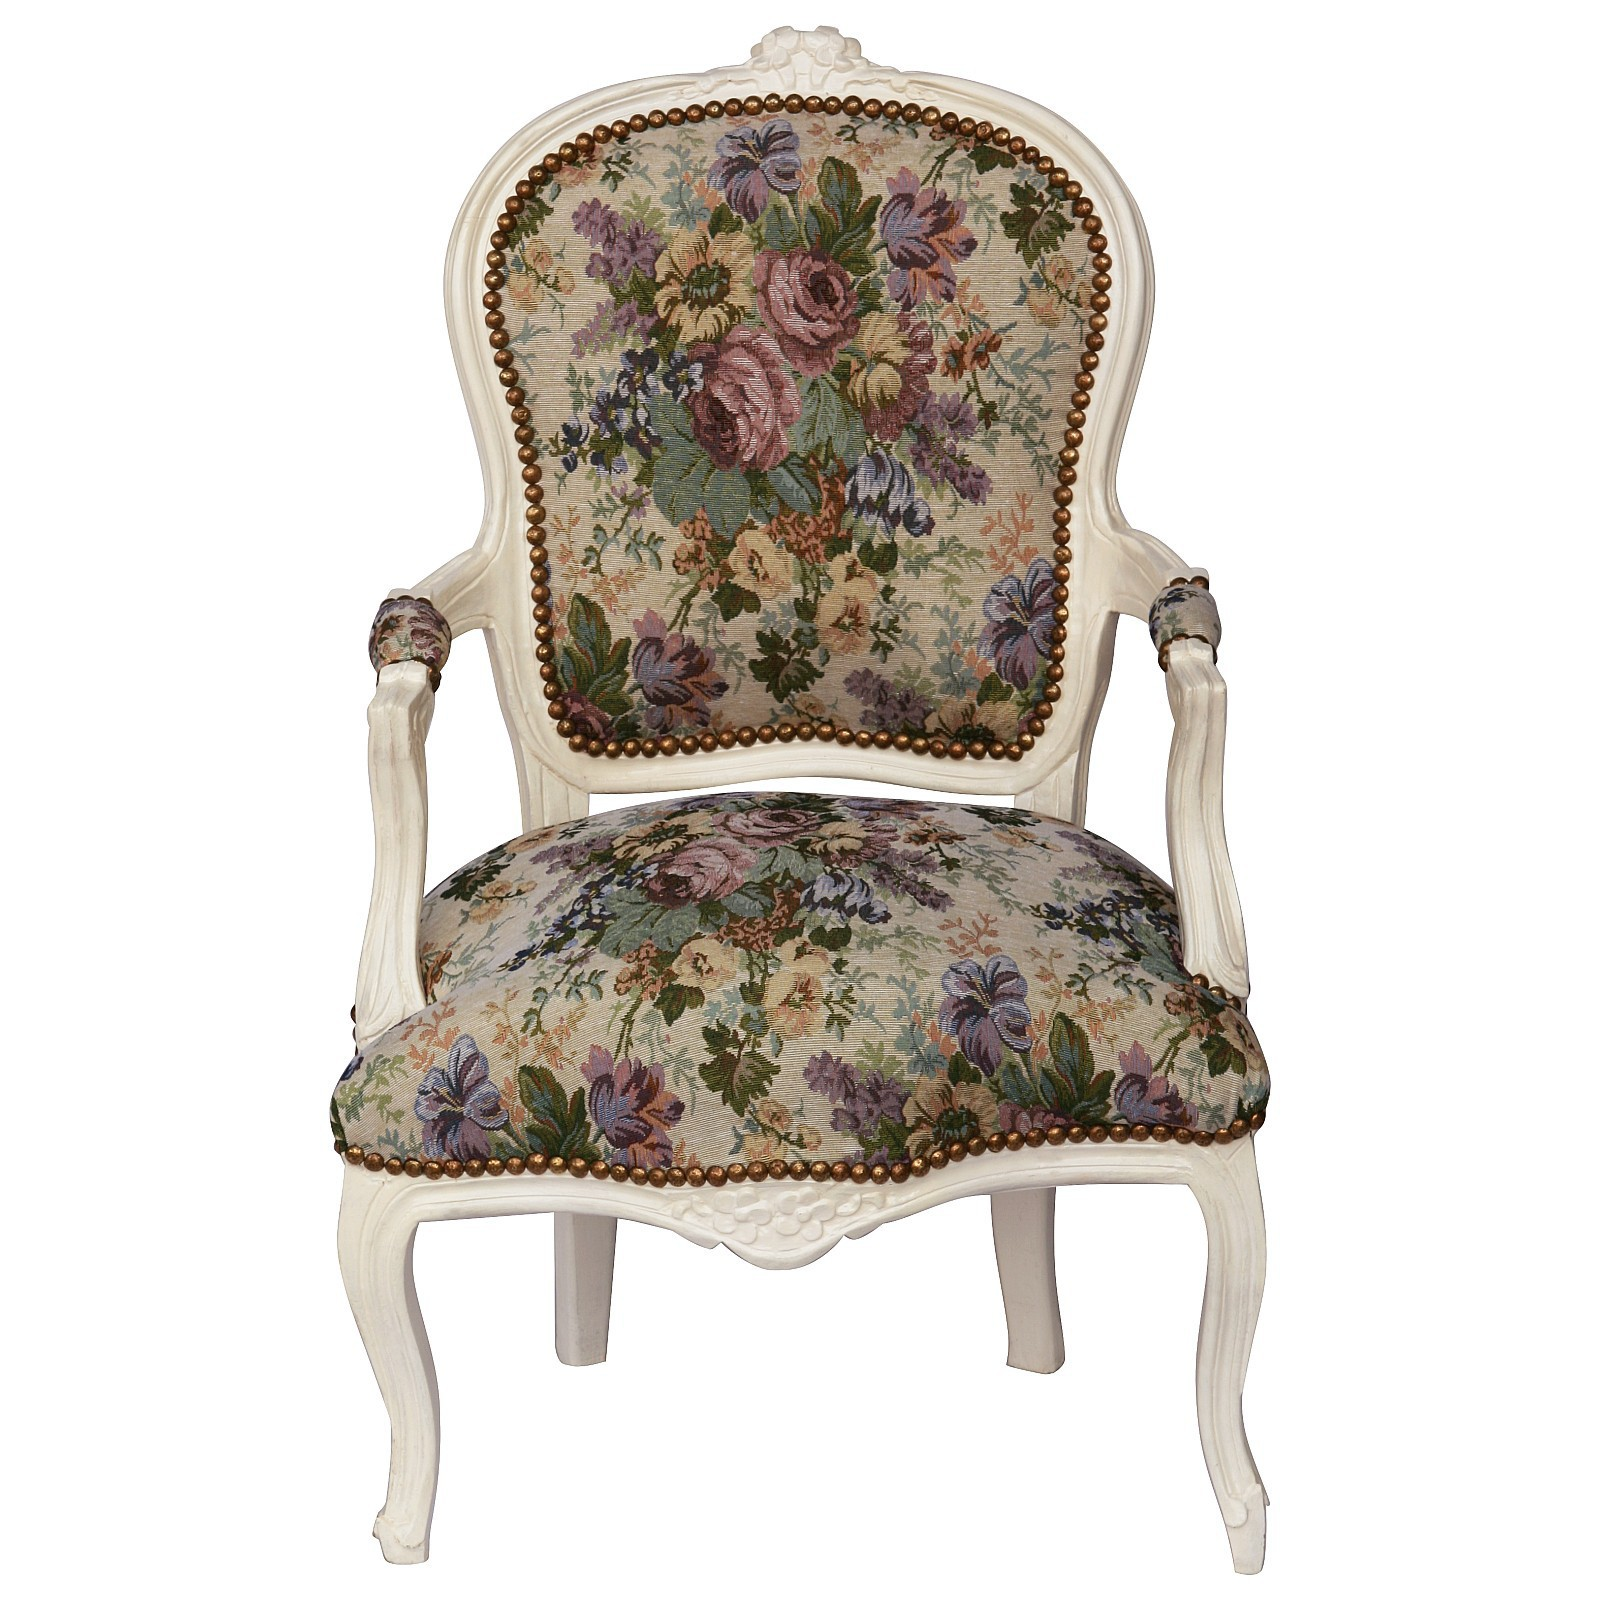 Gentil Magnificent Flowery Baroque Armchair With Solid Beige Wood Frame 001